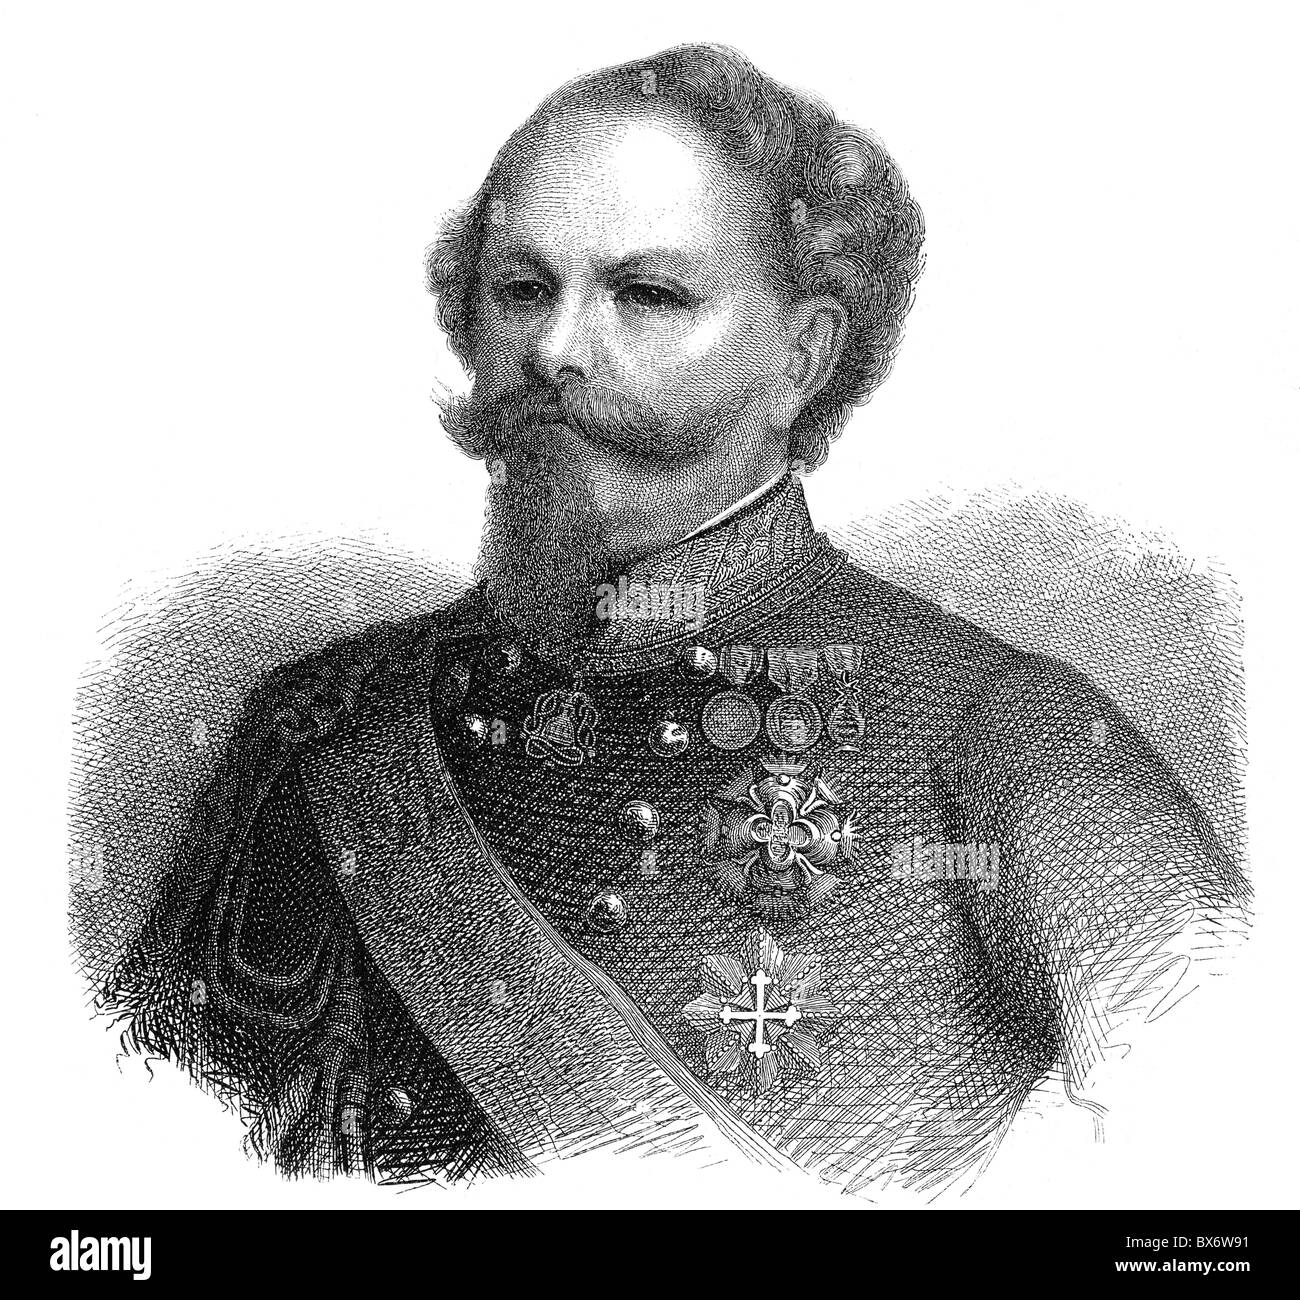 Victor Emmanuel II of Italy, 14.3.1820 - 9.1.1878, King of Italy 1861 - 1878, portrait, wood engraving, 19th century, - Stock Image